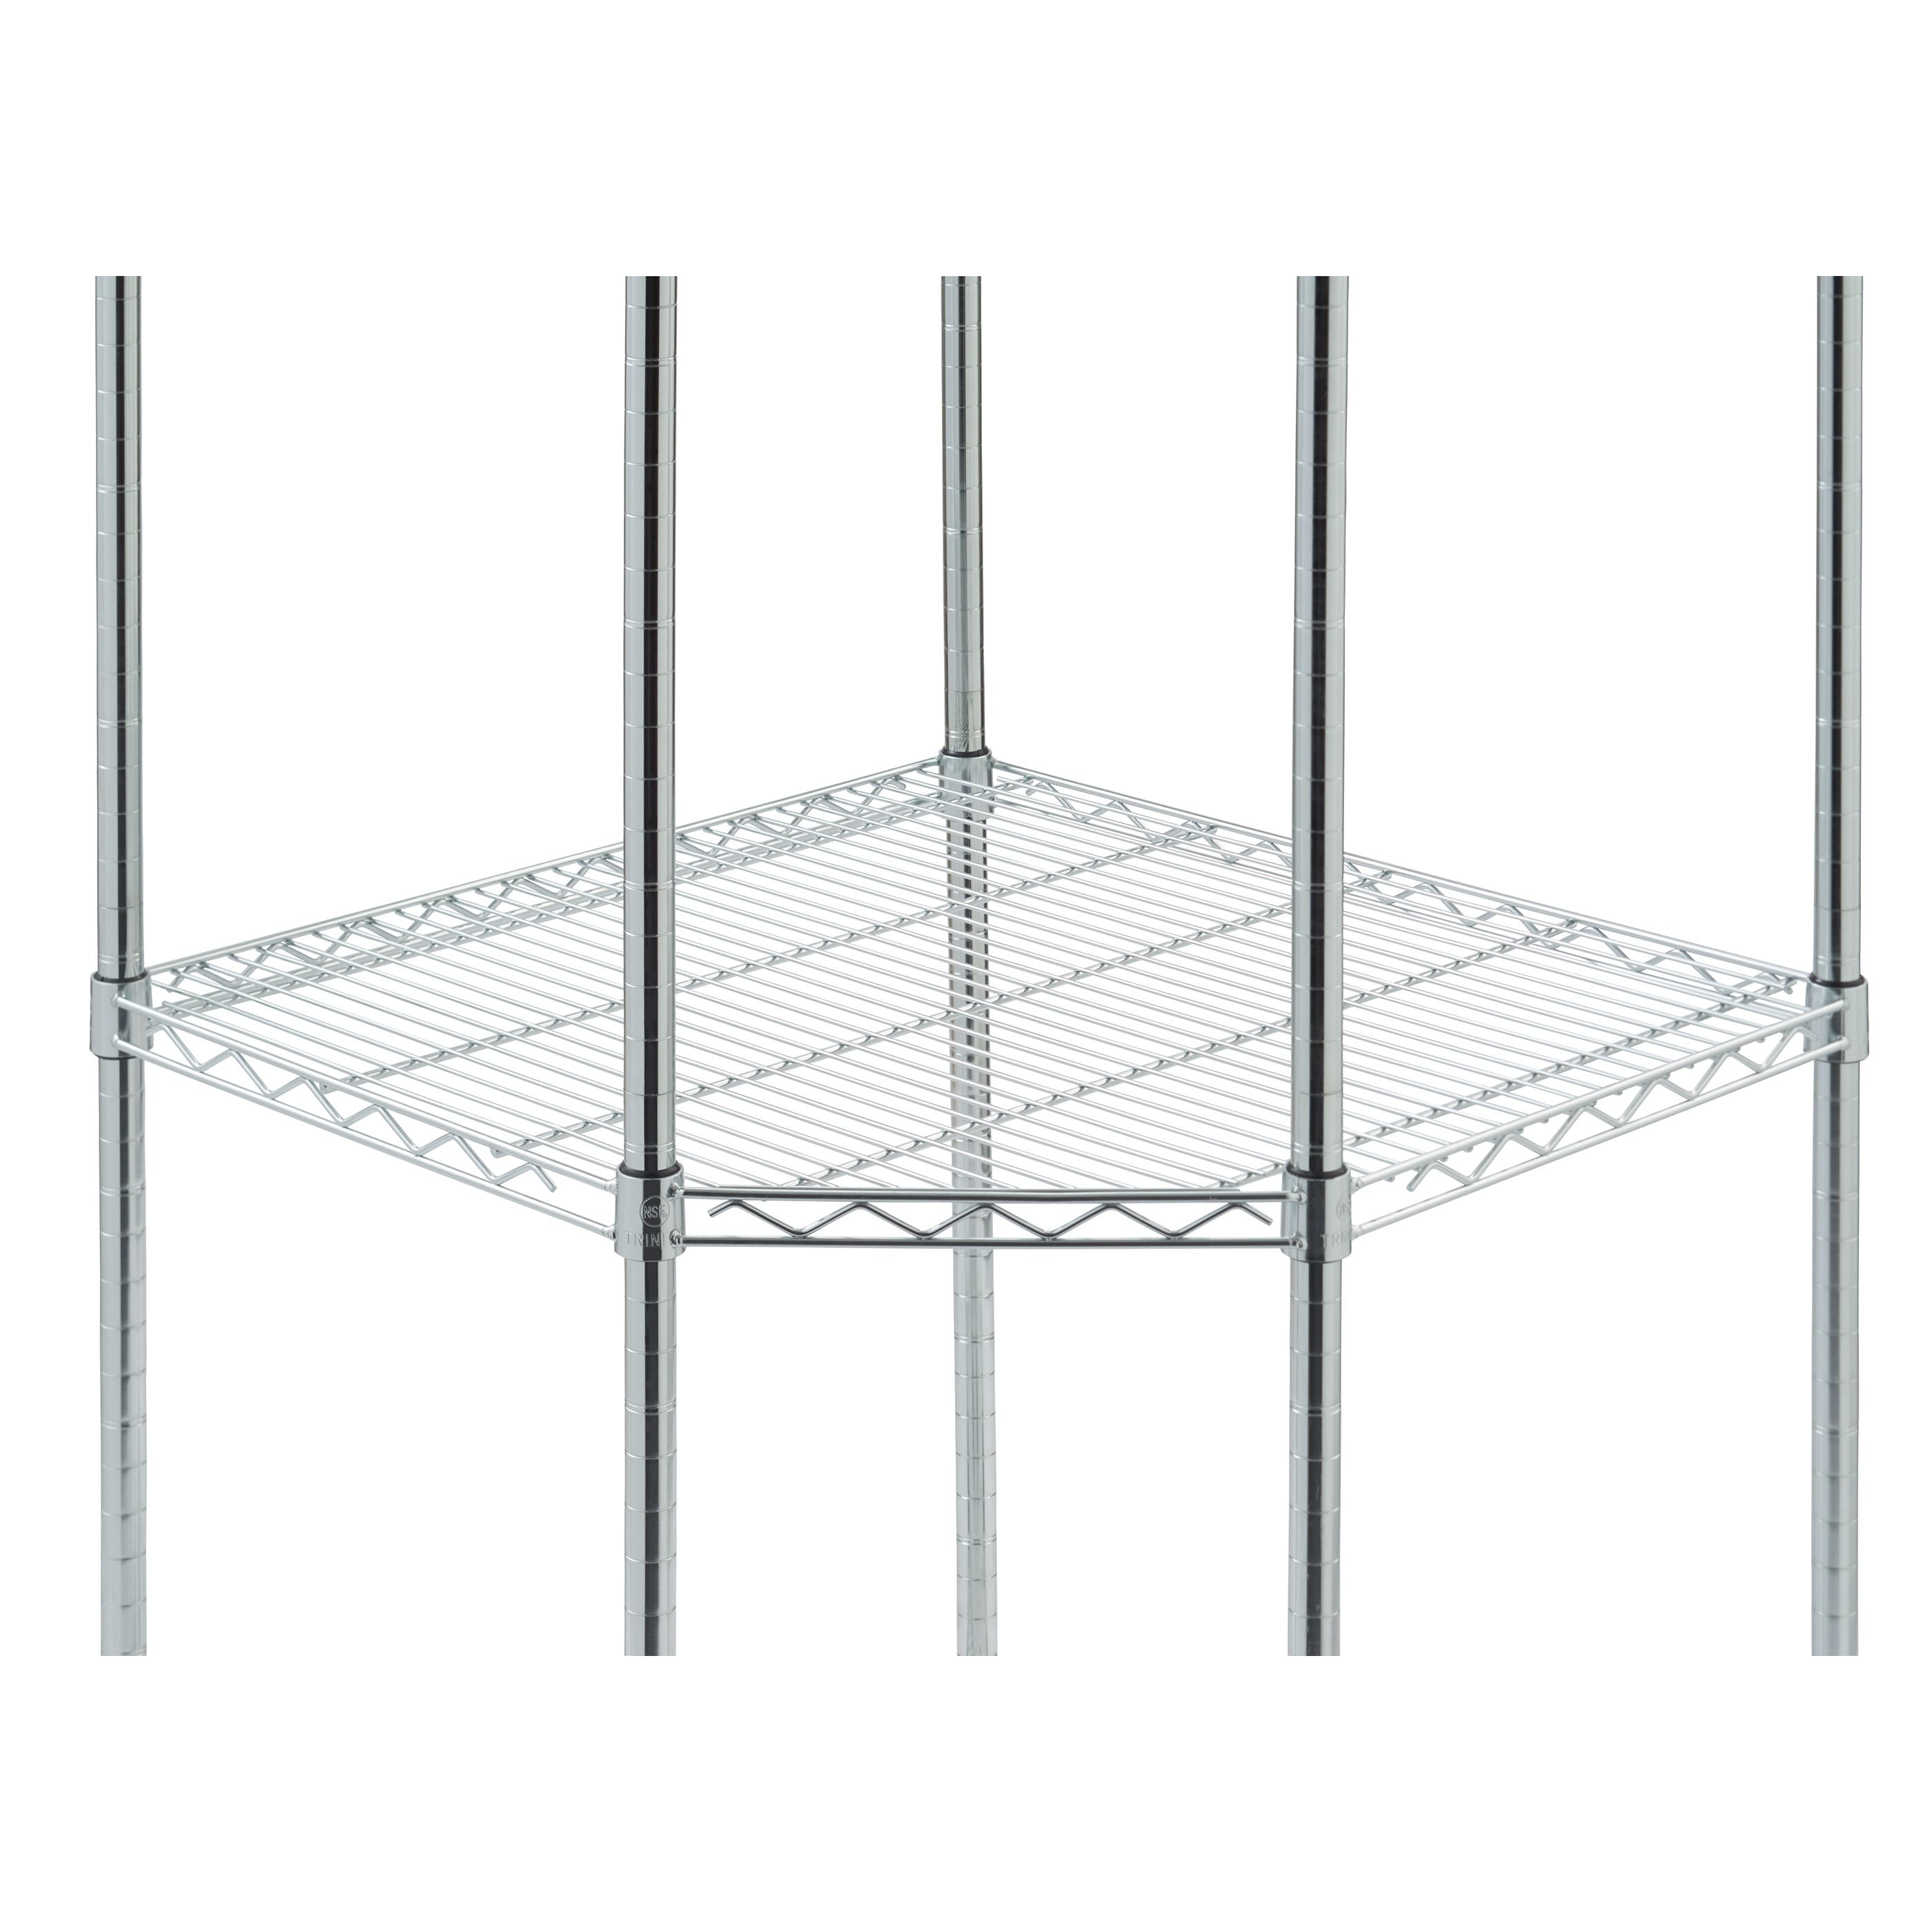 TRINITY EcoStorage 4 Tier Chrome Wire Wheeled Corner Shelving Rack   Free  Shipping Today   Overstock   14233945